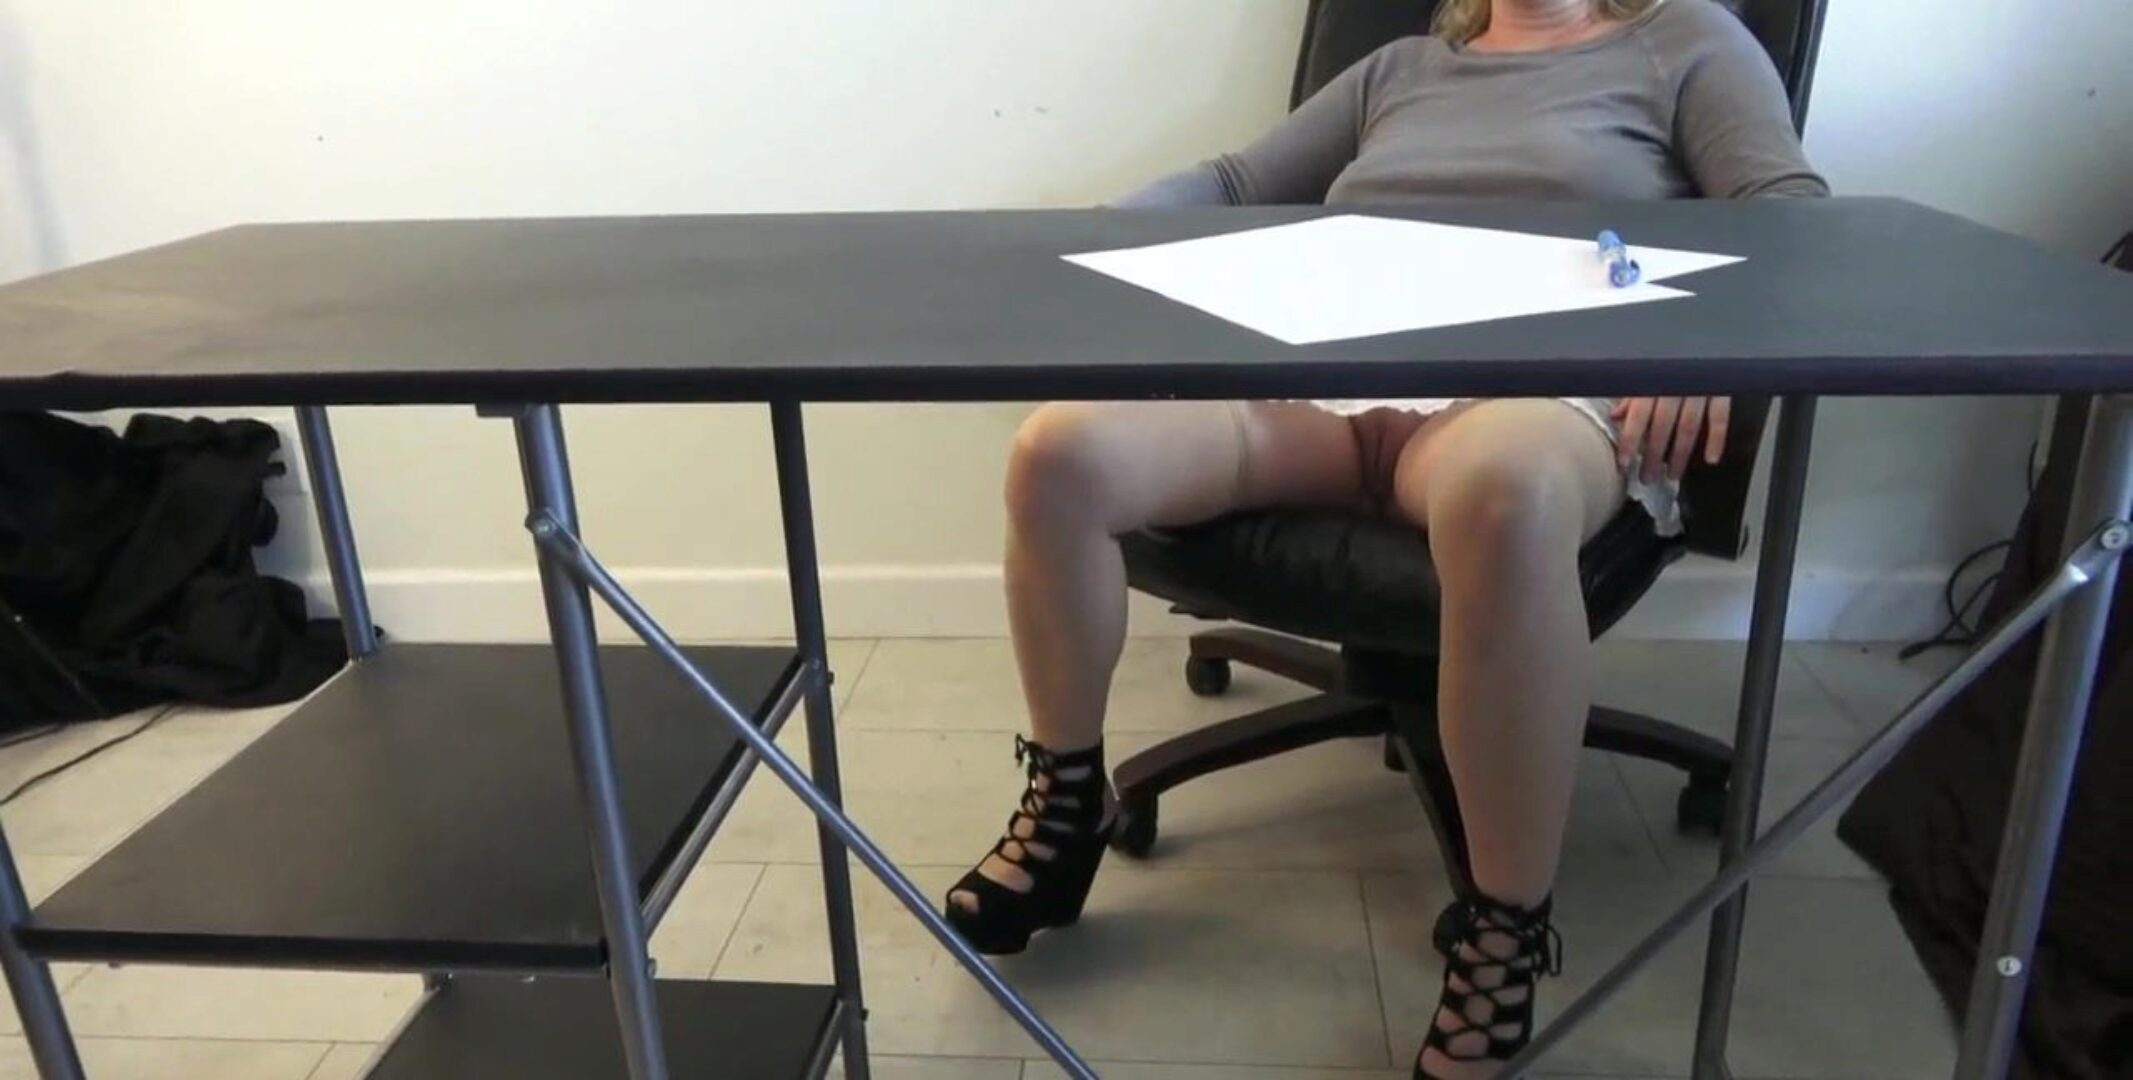 Miss Erin fucks her college girl after class Teacher receives schoolgirls knob on her desk and a facial cumshot